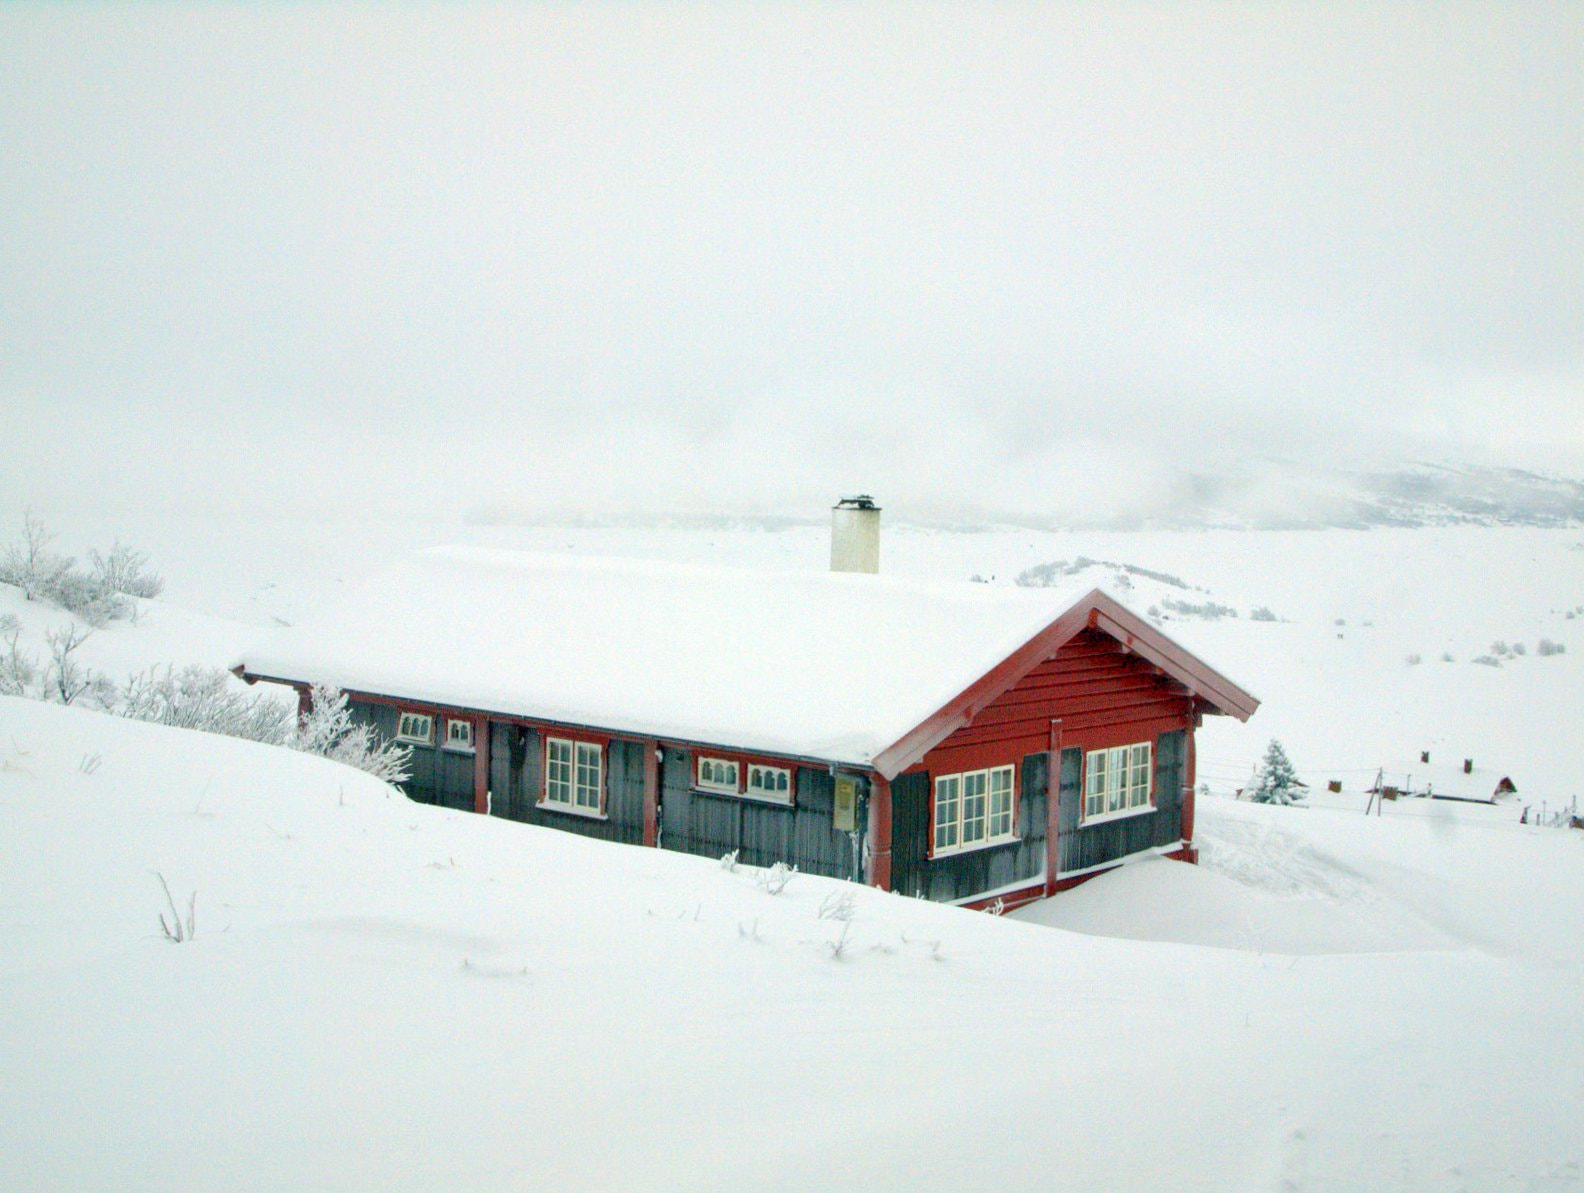 Photograph Cabin by Eivind N on 500px